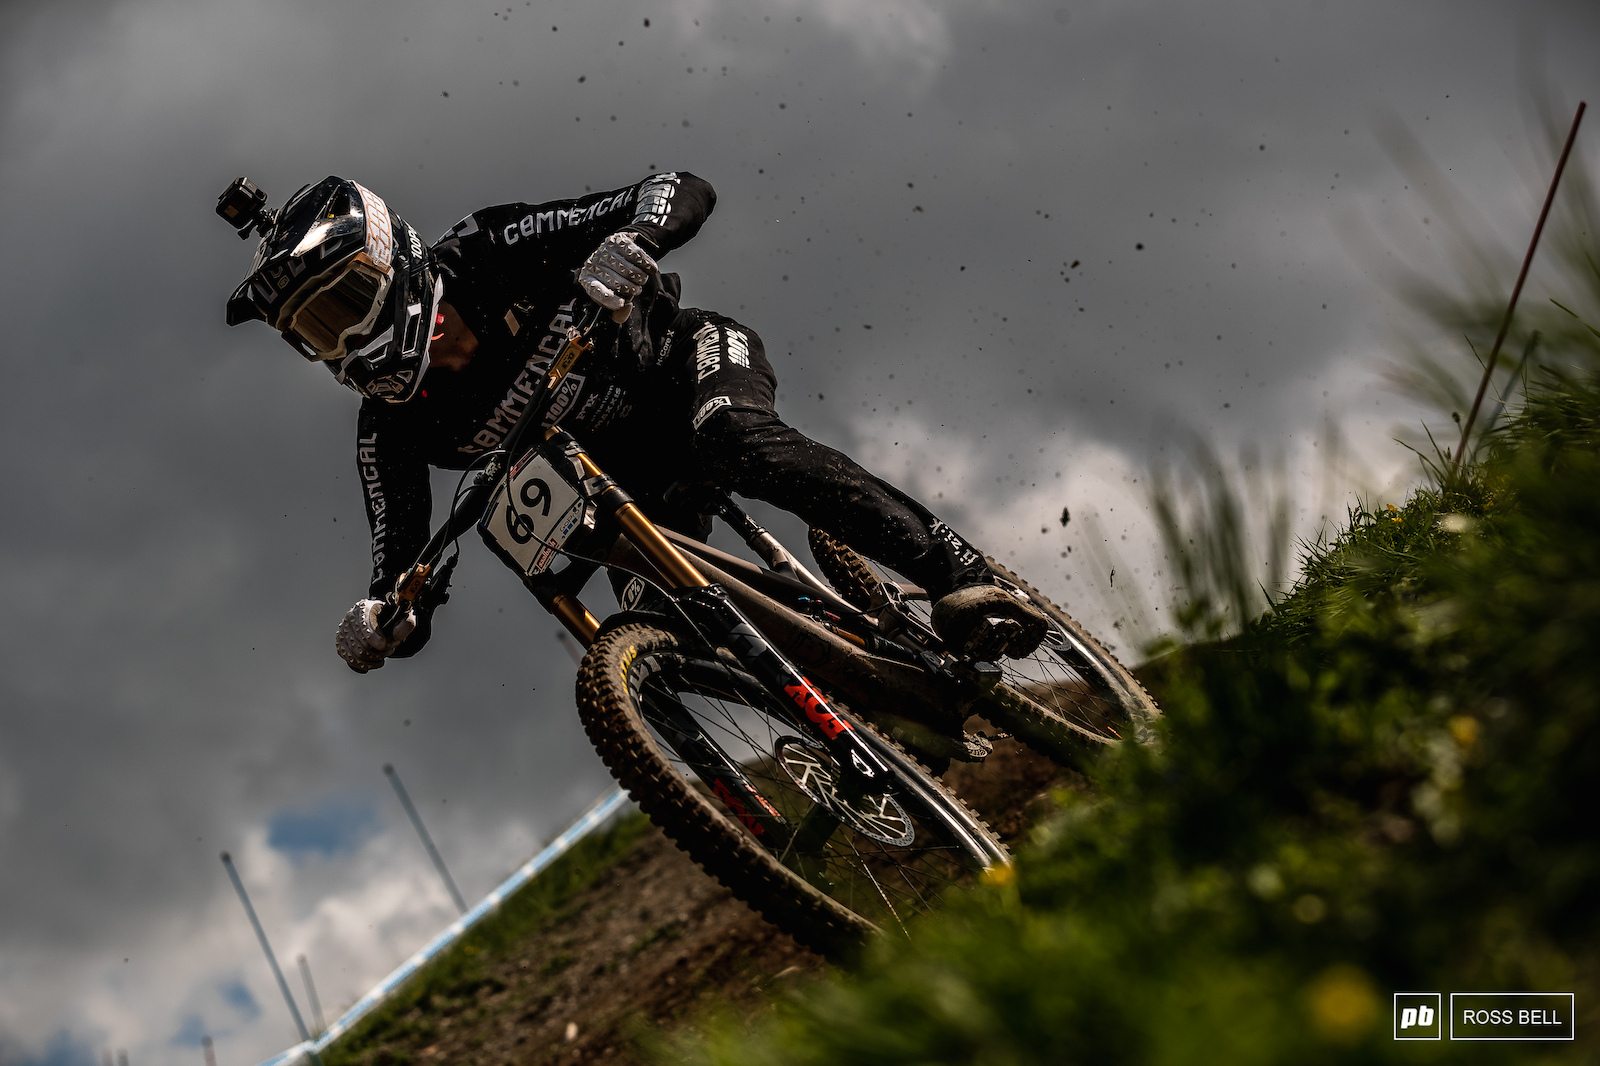 Hugo Frixtalon flicking up roost before the heavens opened and the track became saturated.